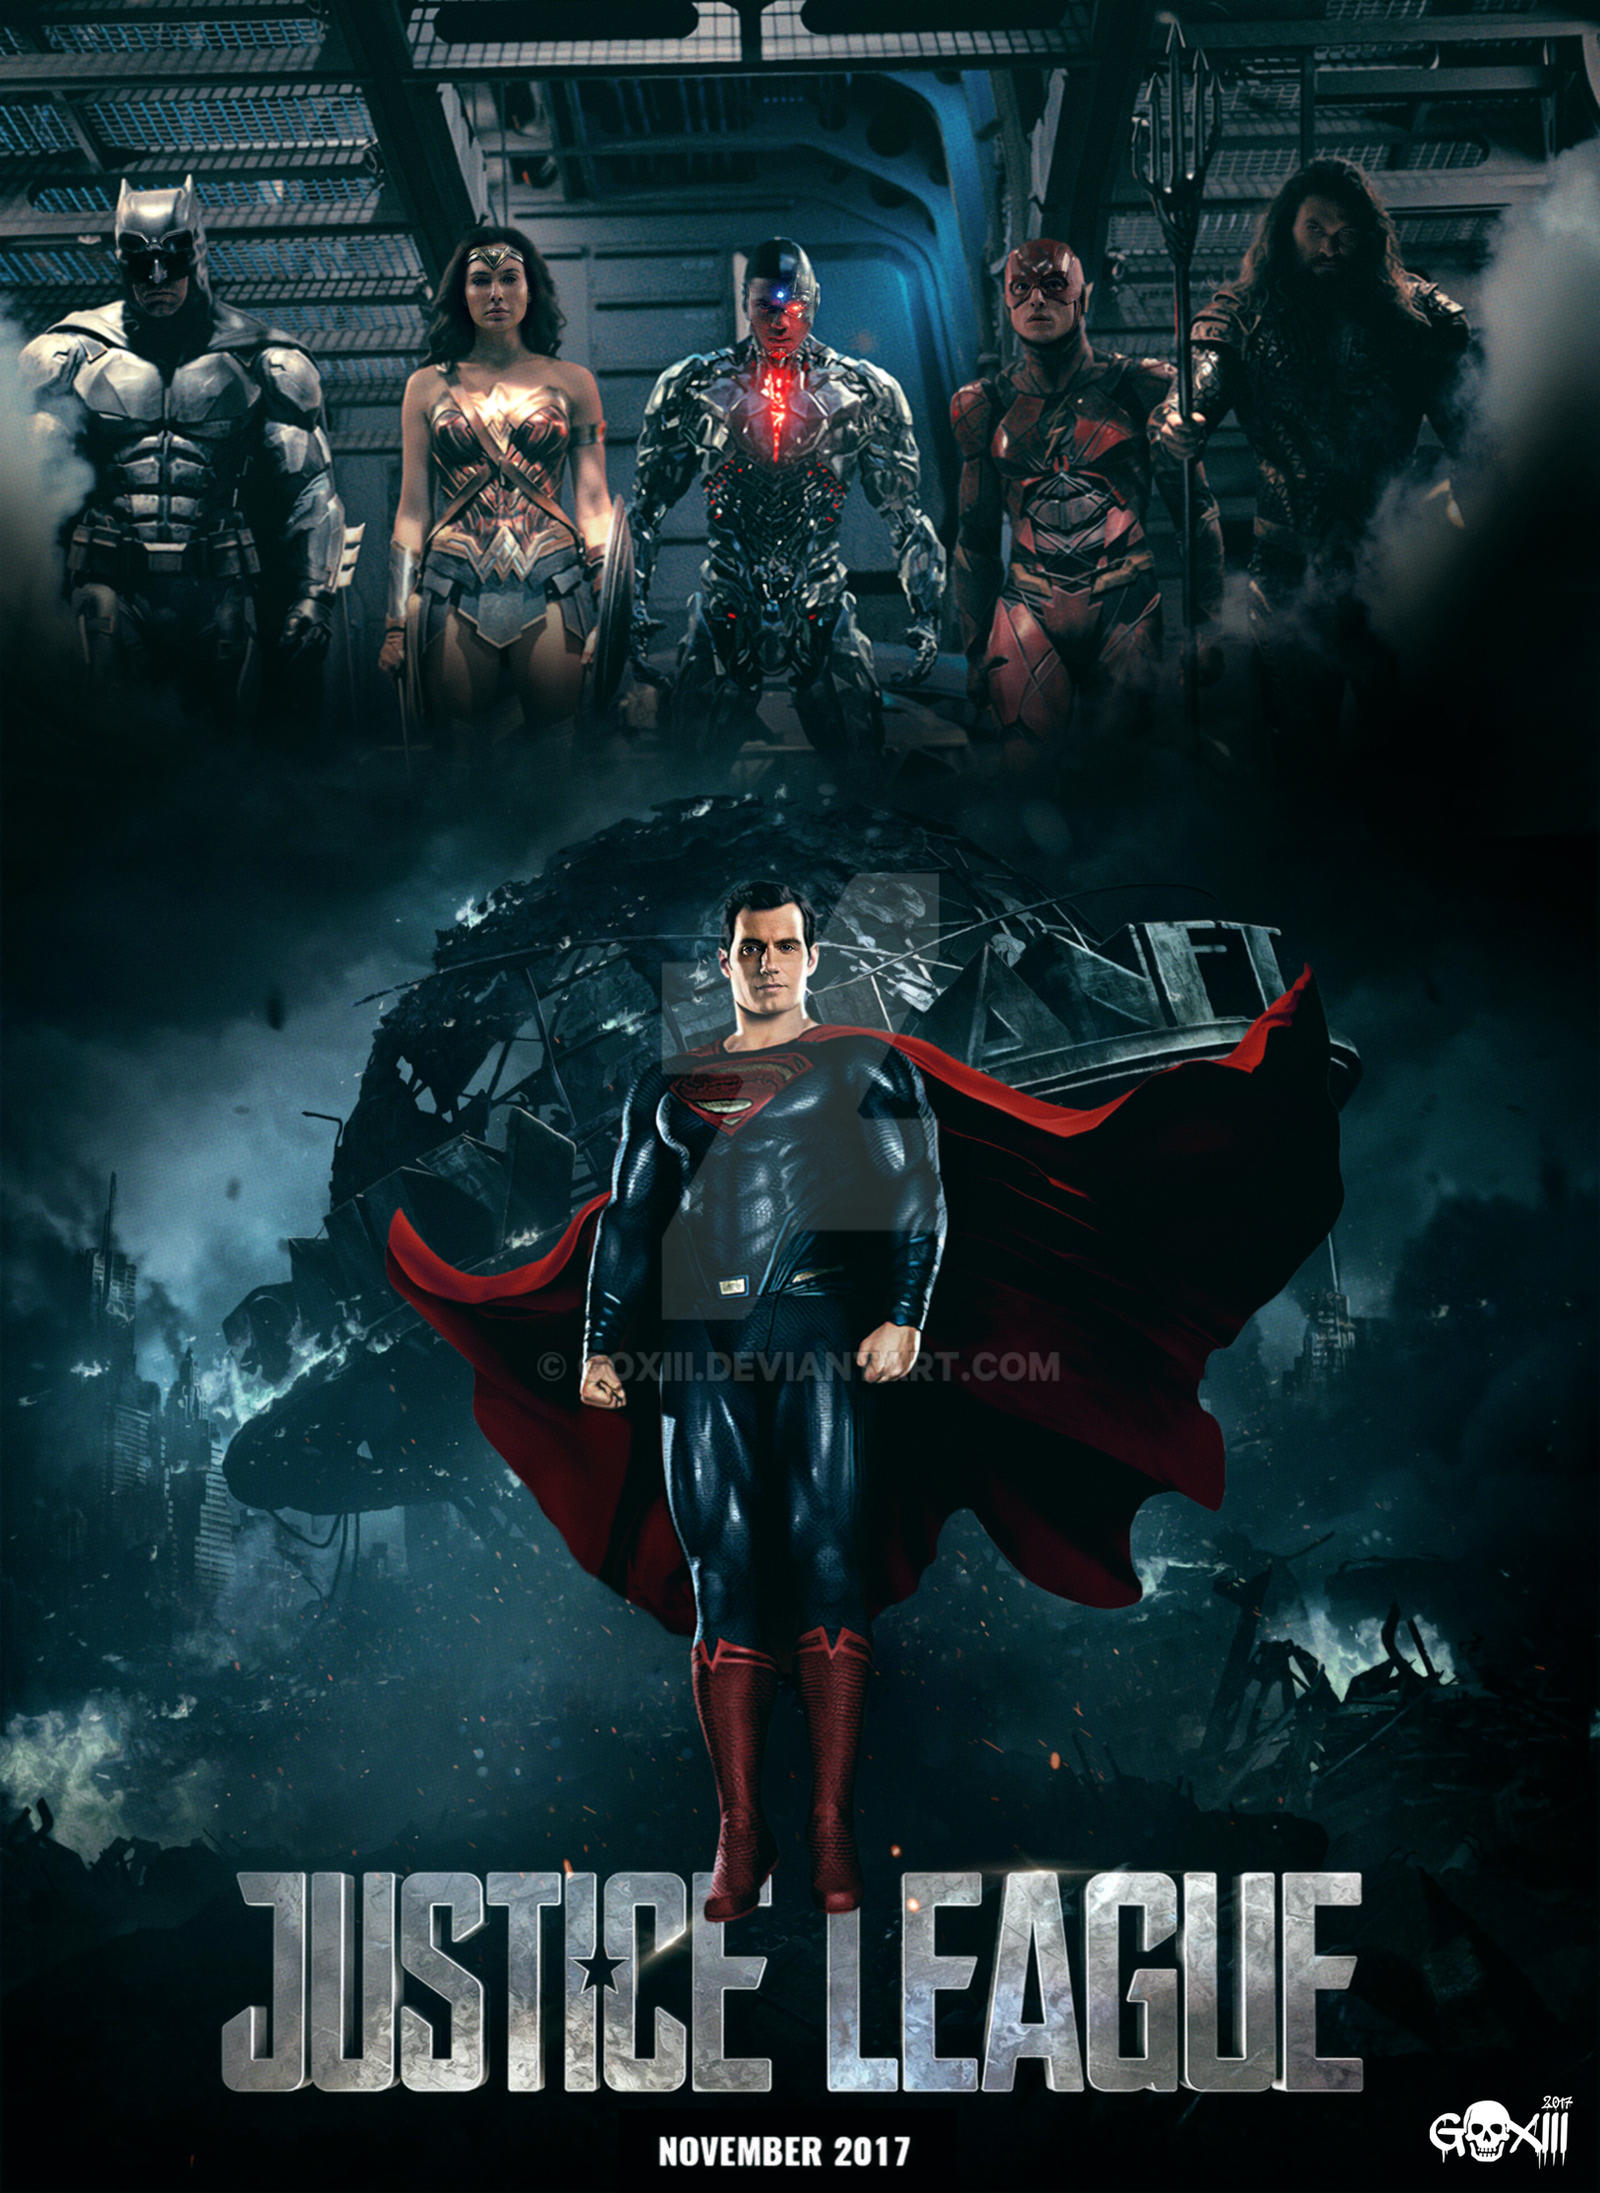 Official movie posters